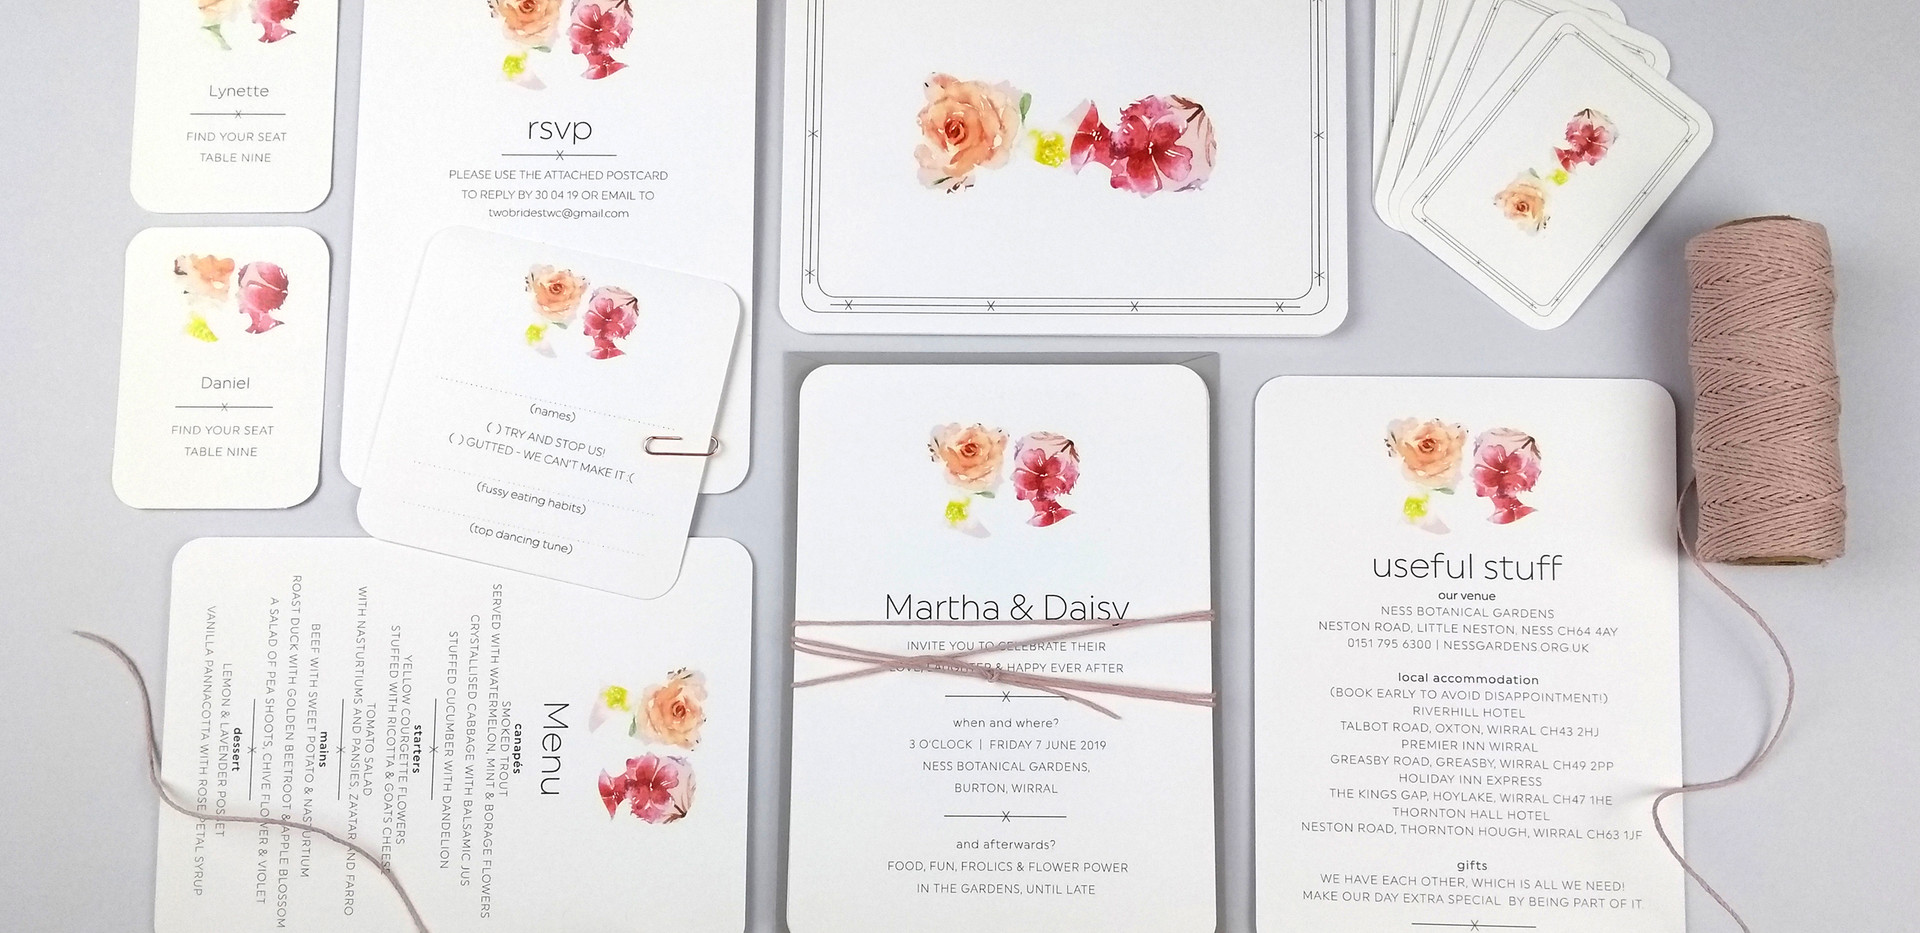 Daisy and Martha's playing card invitation